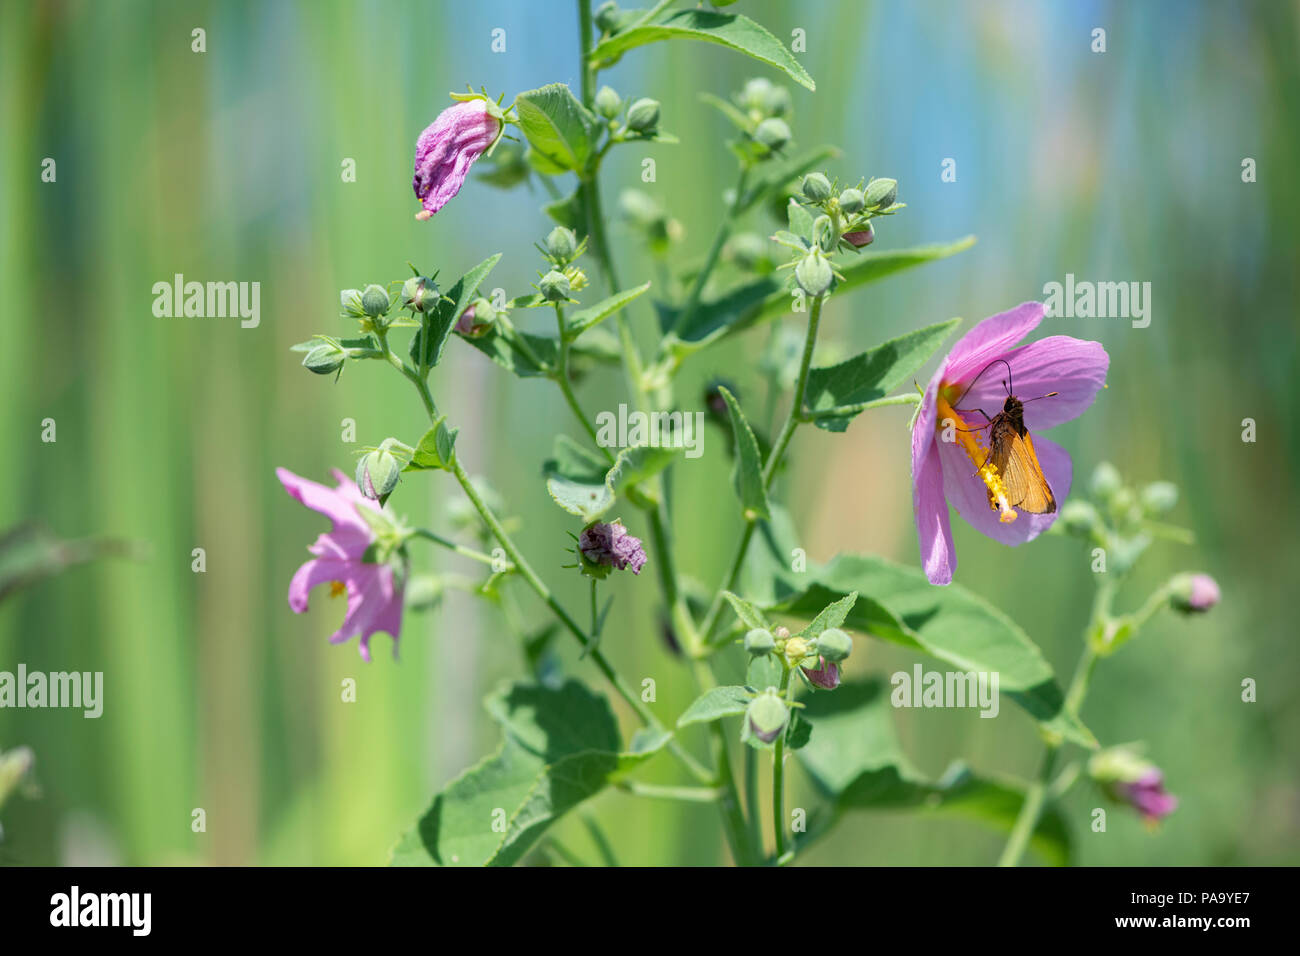 A butterfly visits a satlmarsh mallow - Stock Image